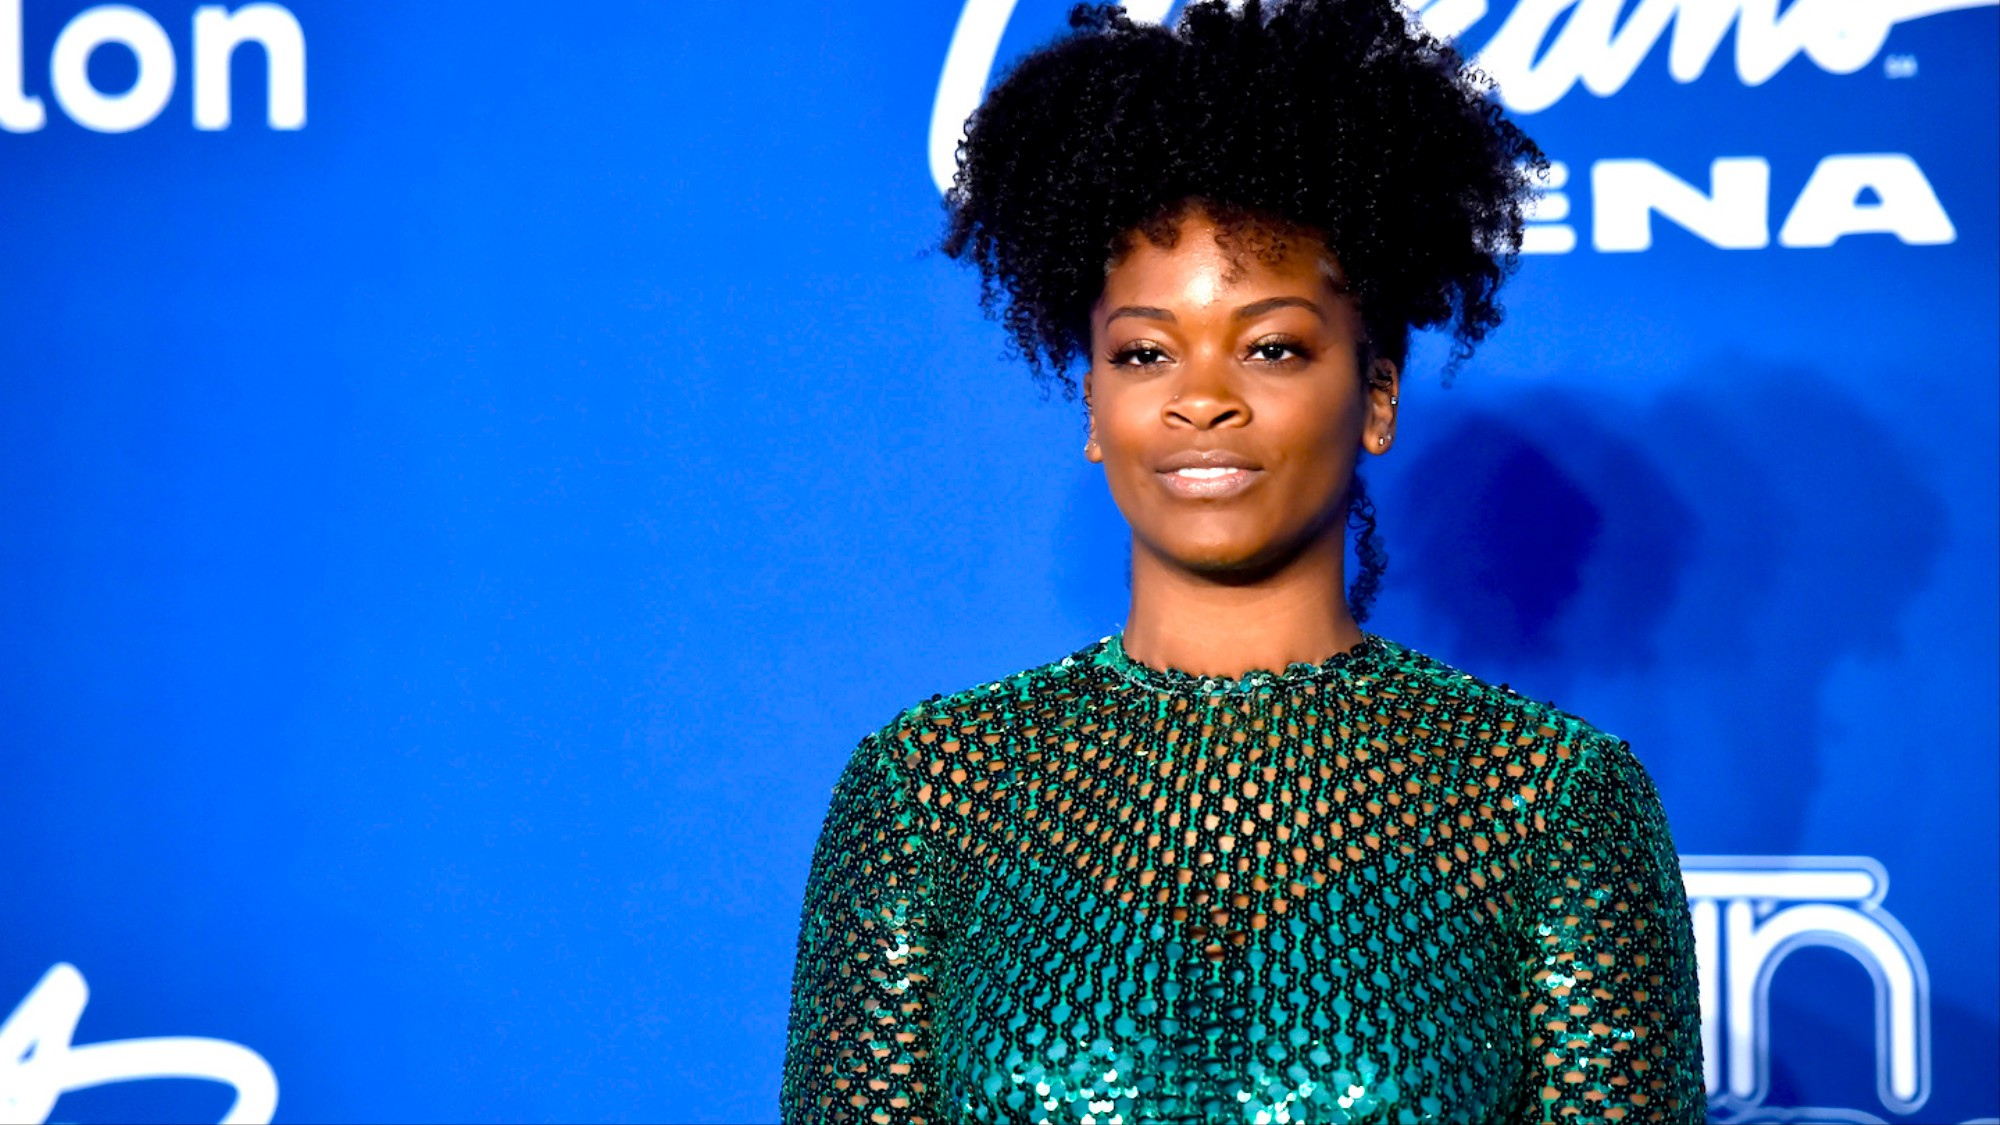 Ari Lennox On Dc Cheesesteaks The Sims And Sad Disney Movies Broadly